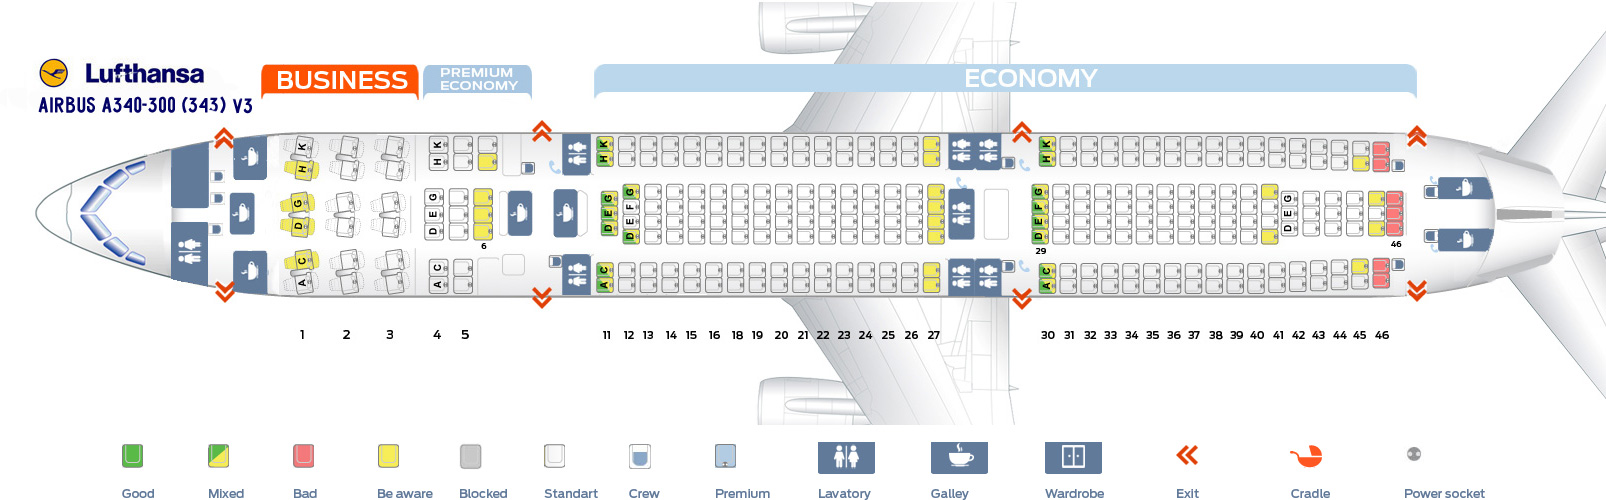 Lufthansa Seat Map A340 600 Seat Map Airbus A340 300